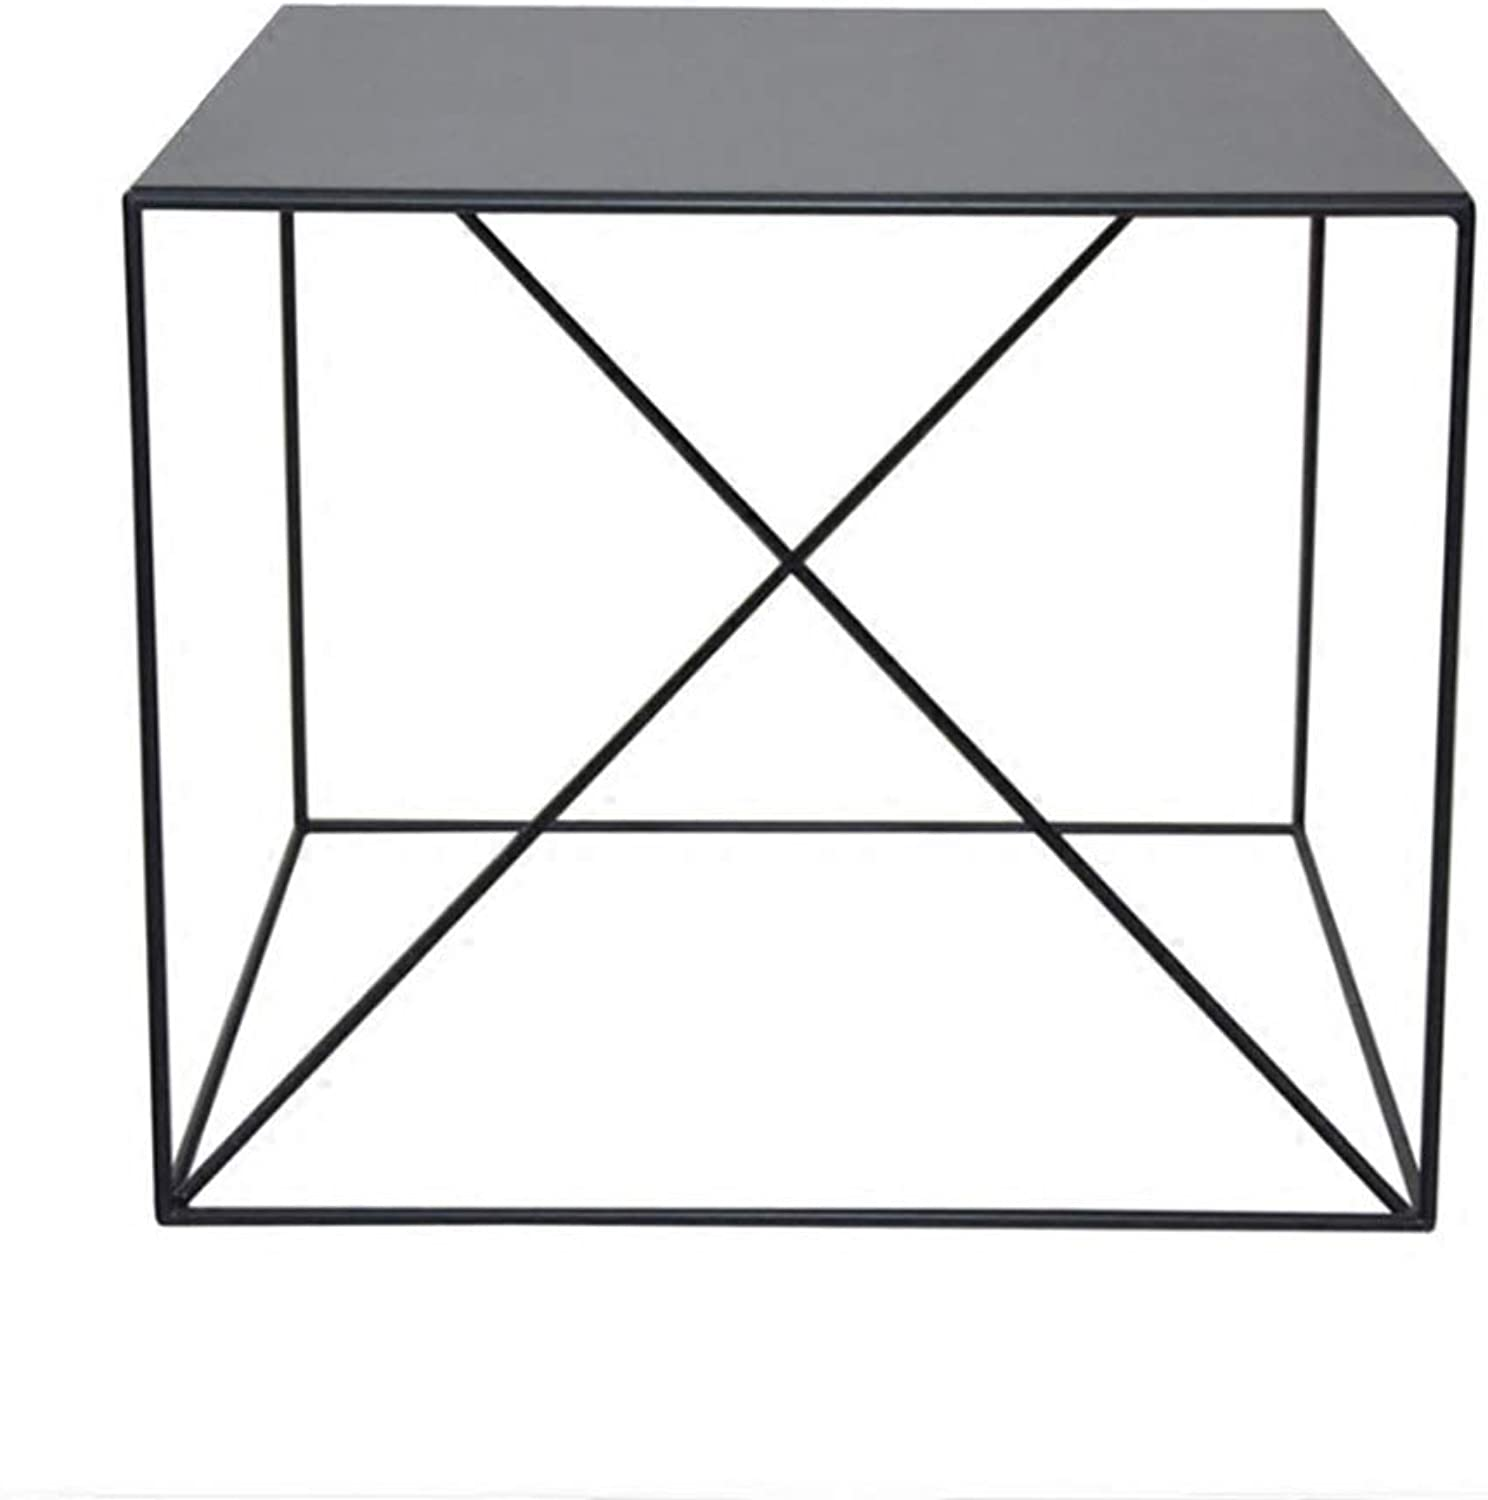 Iron Art Side Living Room Sofa Corner A Few Bedroom Bed Side Table Black and White American Coffee Table It Can Move Nordic Small Square Simple Modern Square Table,Black